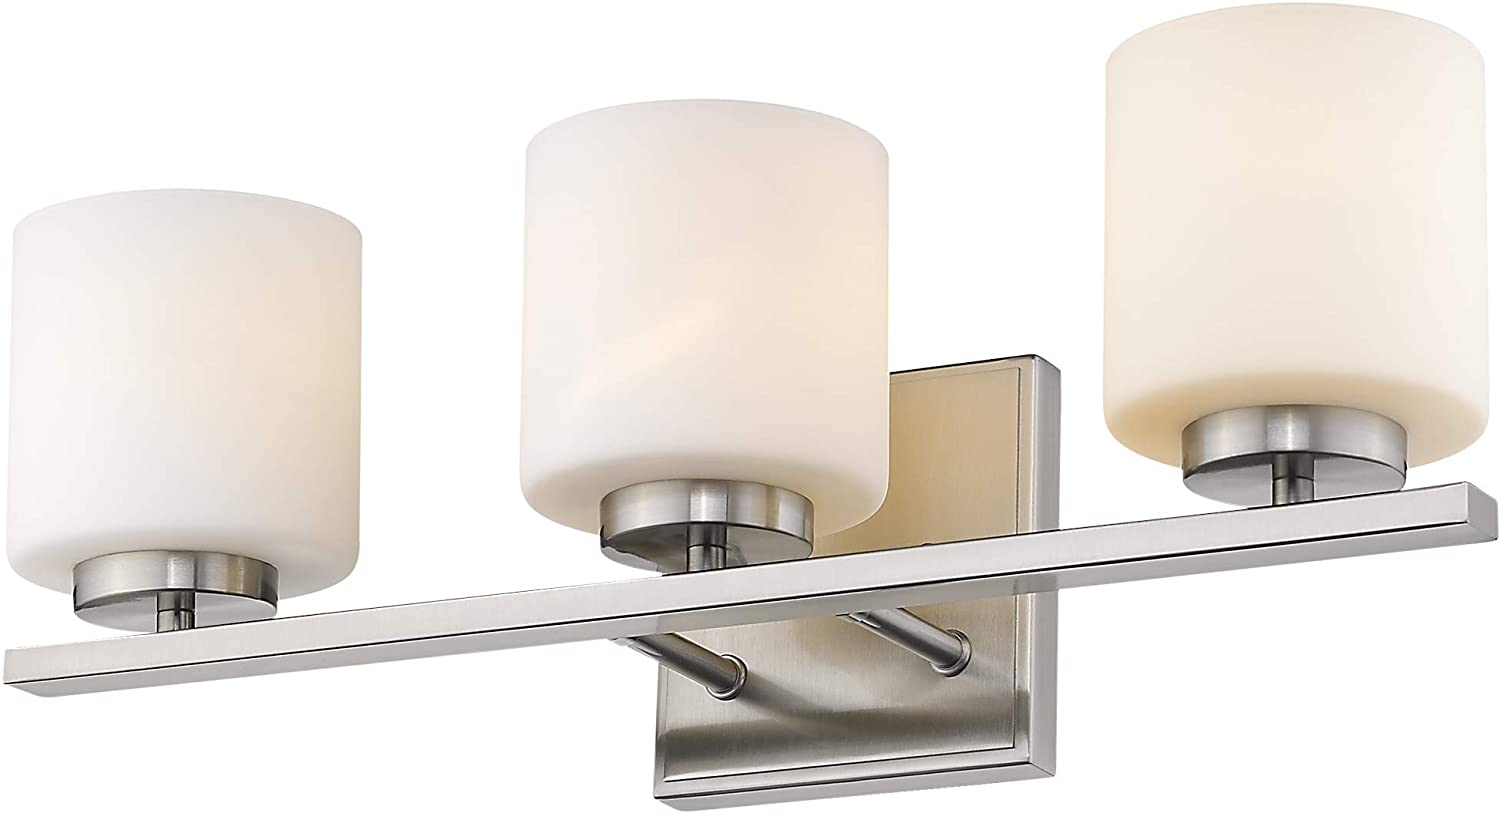 Emliviar 3 Light Bathroom Vanity Light Fixture Brushed Nickel Finish With White Frosted Glass Shade 21002 3b Amazon Ca Home Kitchen